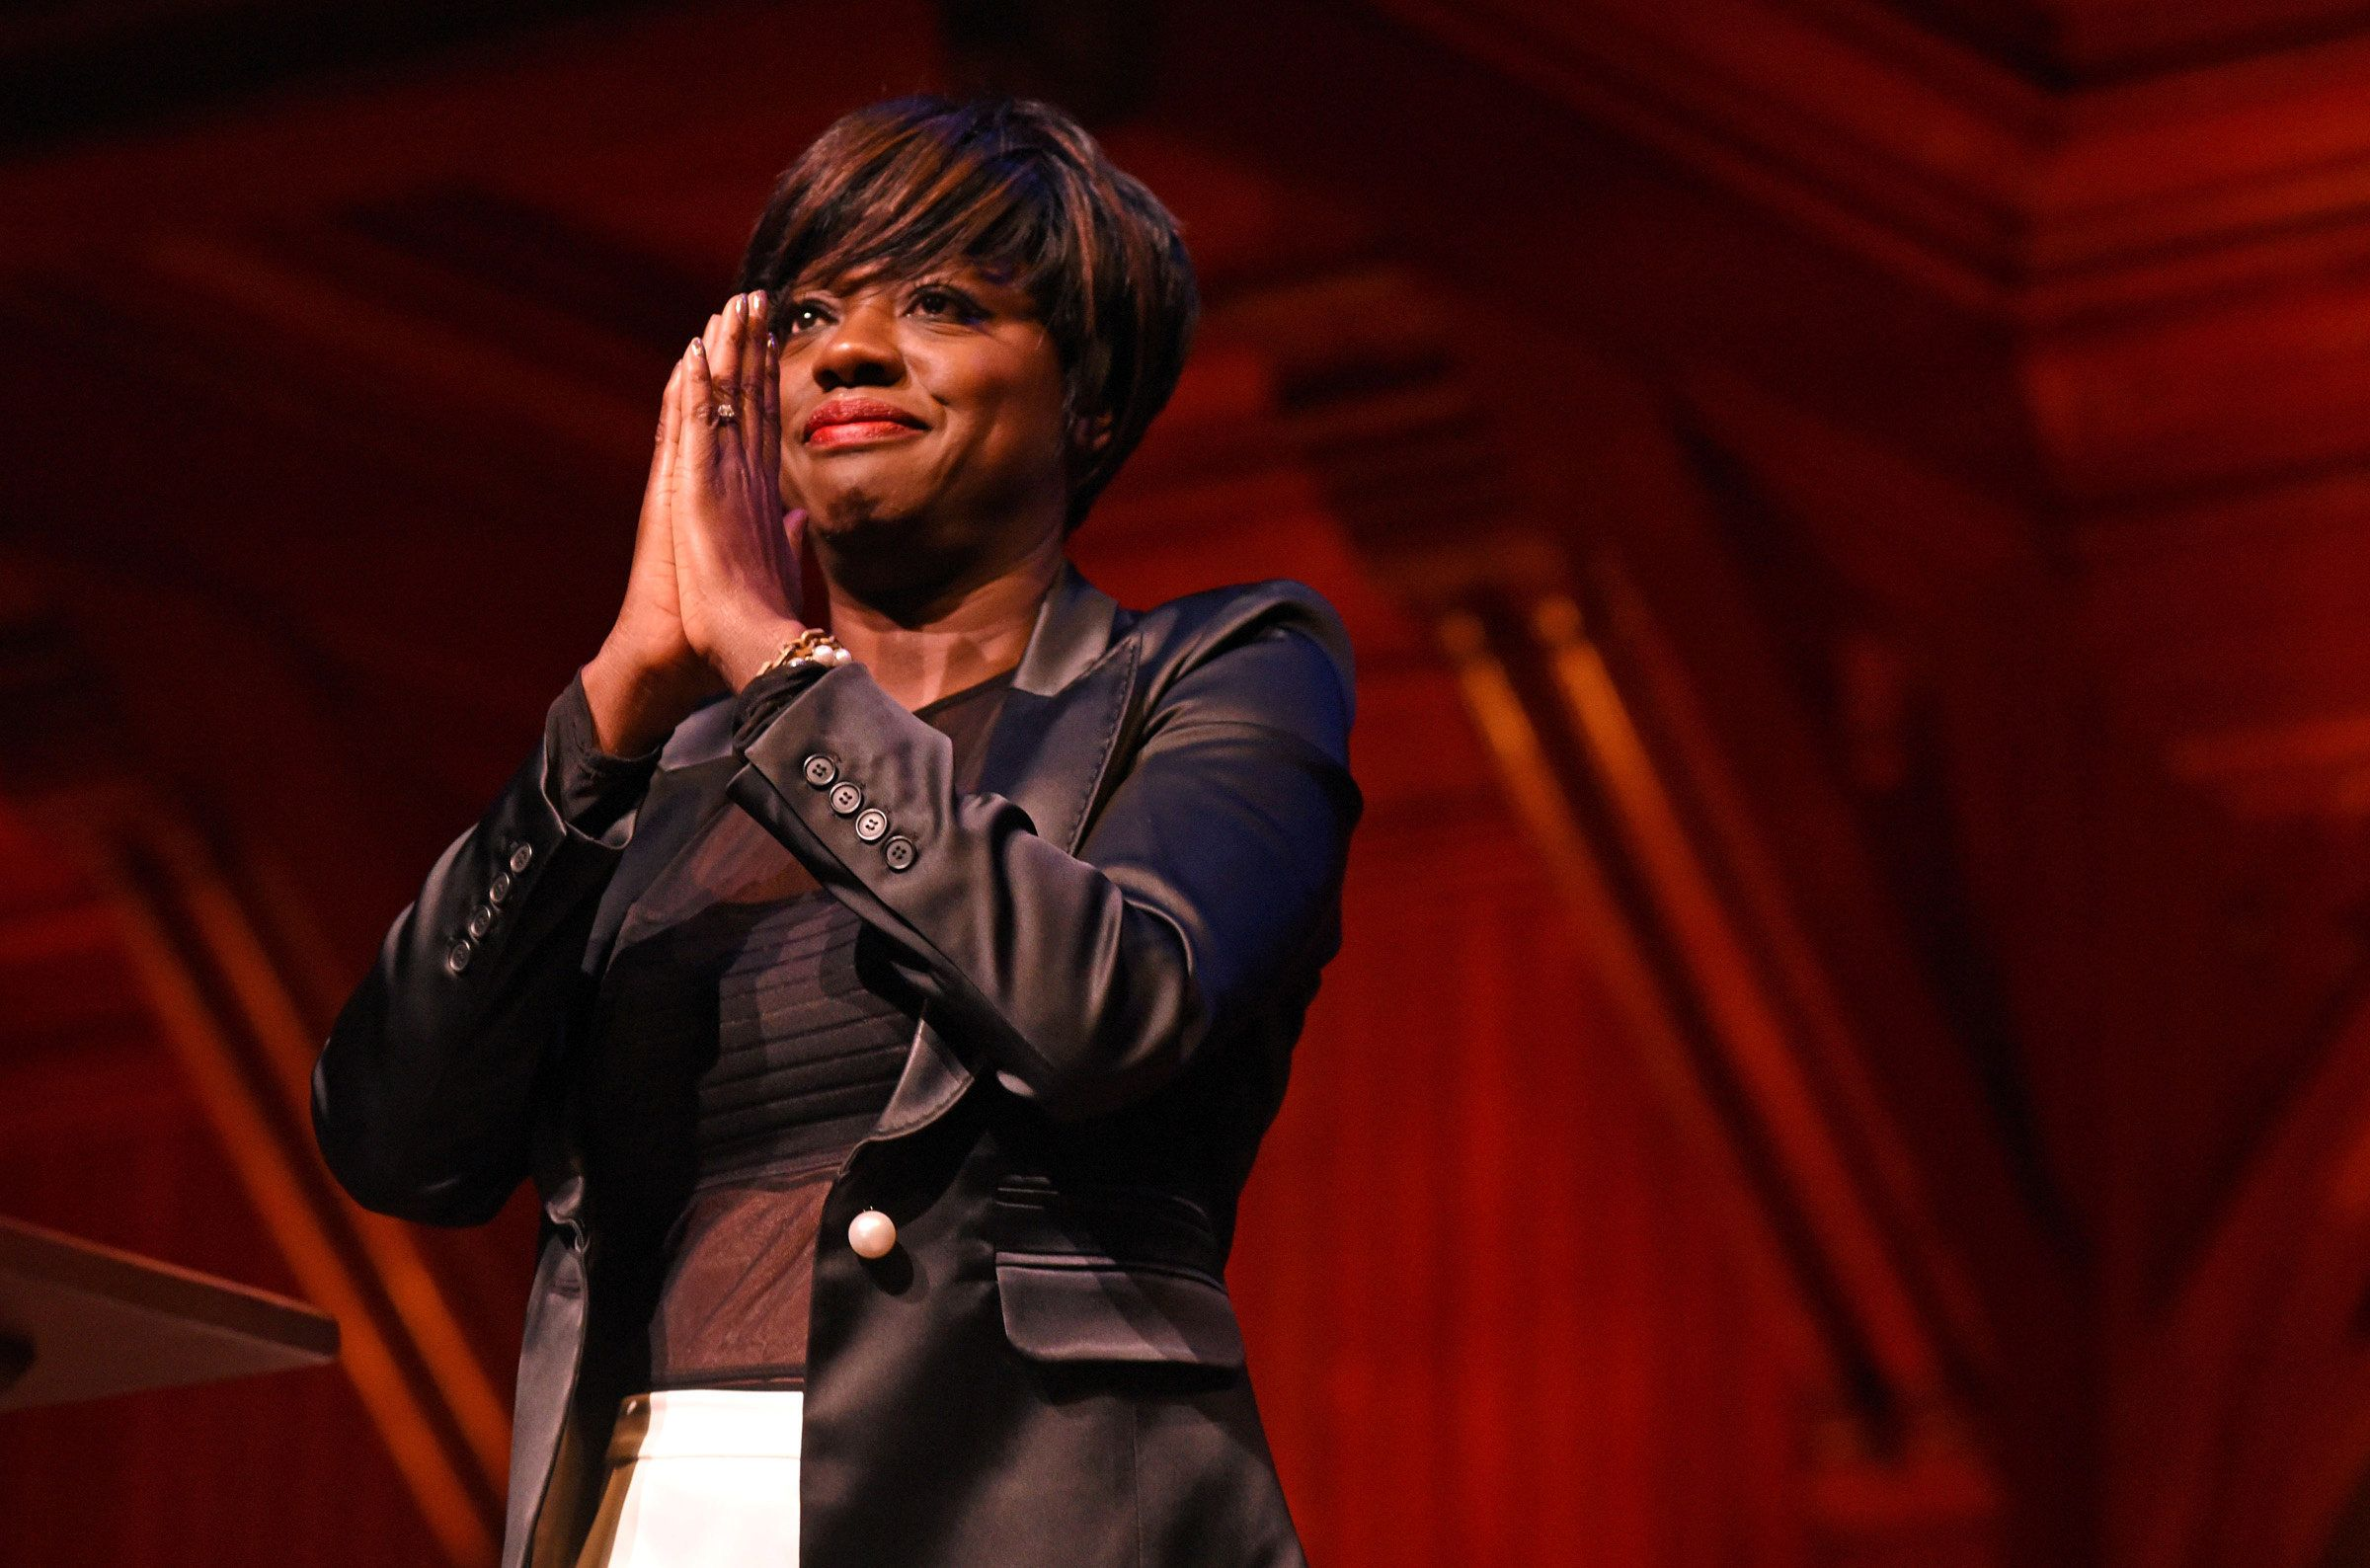 Actress Viola Davis gestures to the crowd after receiving the Harvard Foundation's arts medal during the 32nd annual Cultural Rhythms Festival in Sanders Theatre at Harvard University in Cambridge, Massachusetts, U.S., March 4, 2017.   REUTERS/Faith Ninivaggi